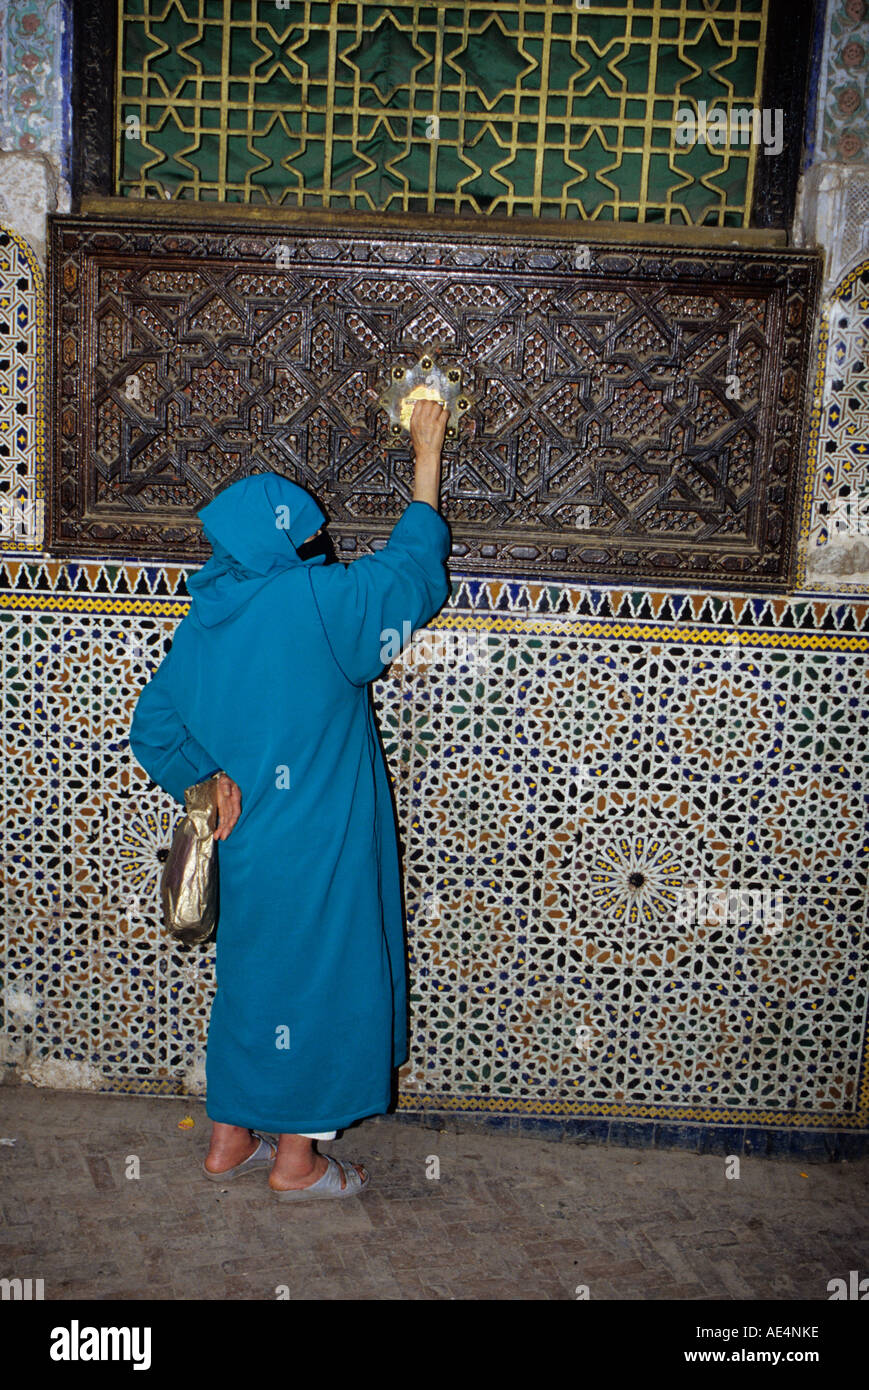 Fez, Morocco. Almsgiving. A woman places a coin in the alms box at the Zawiya of Moulay Idris II in Old Fez. Stock Photo